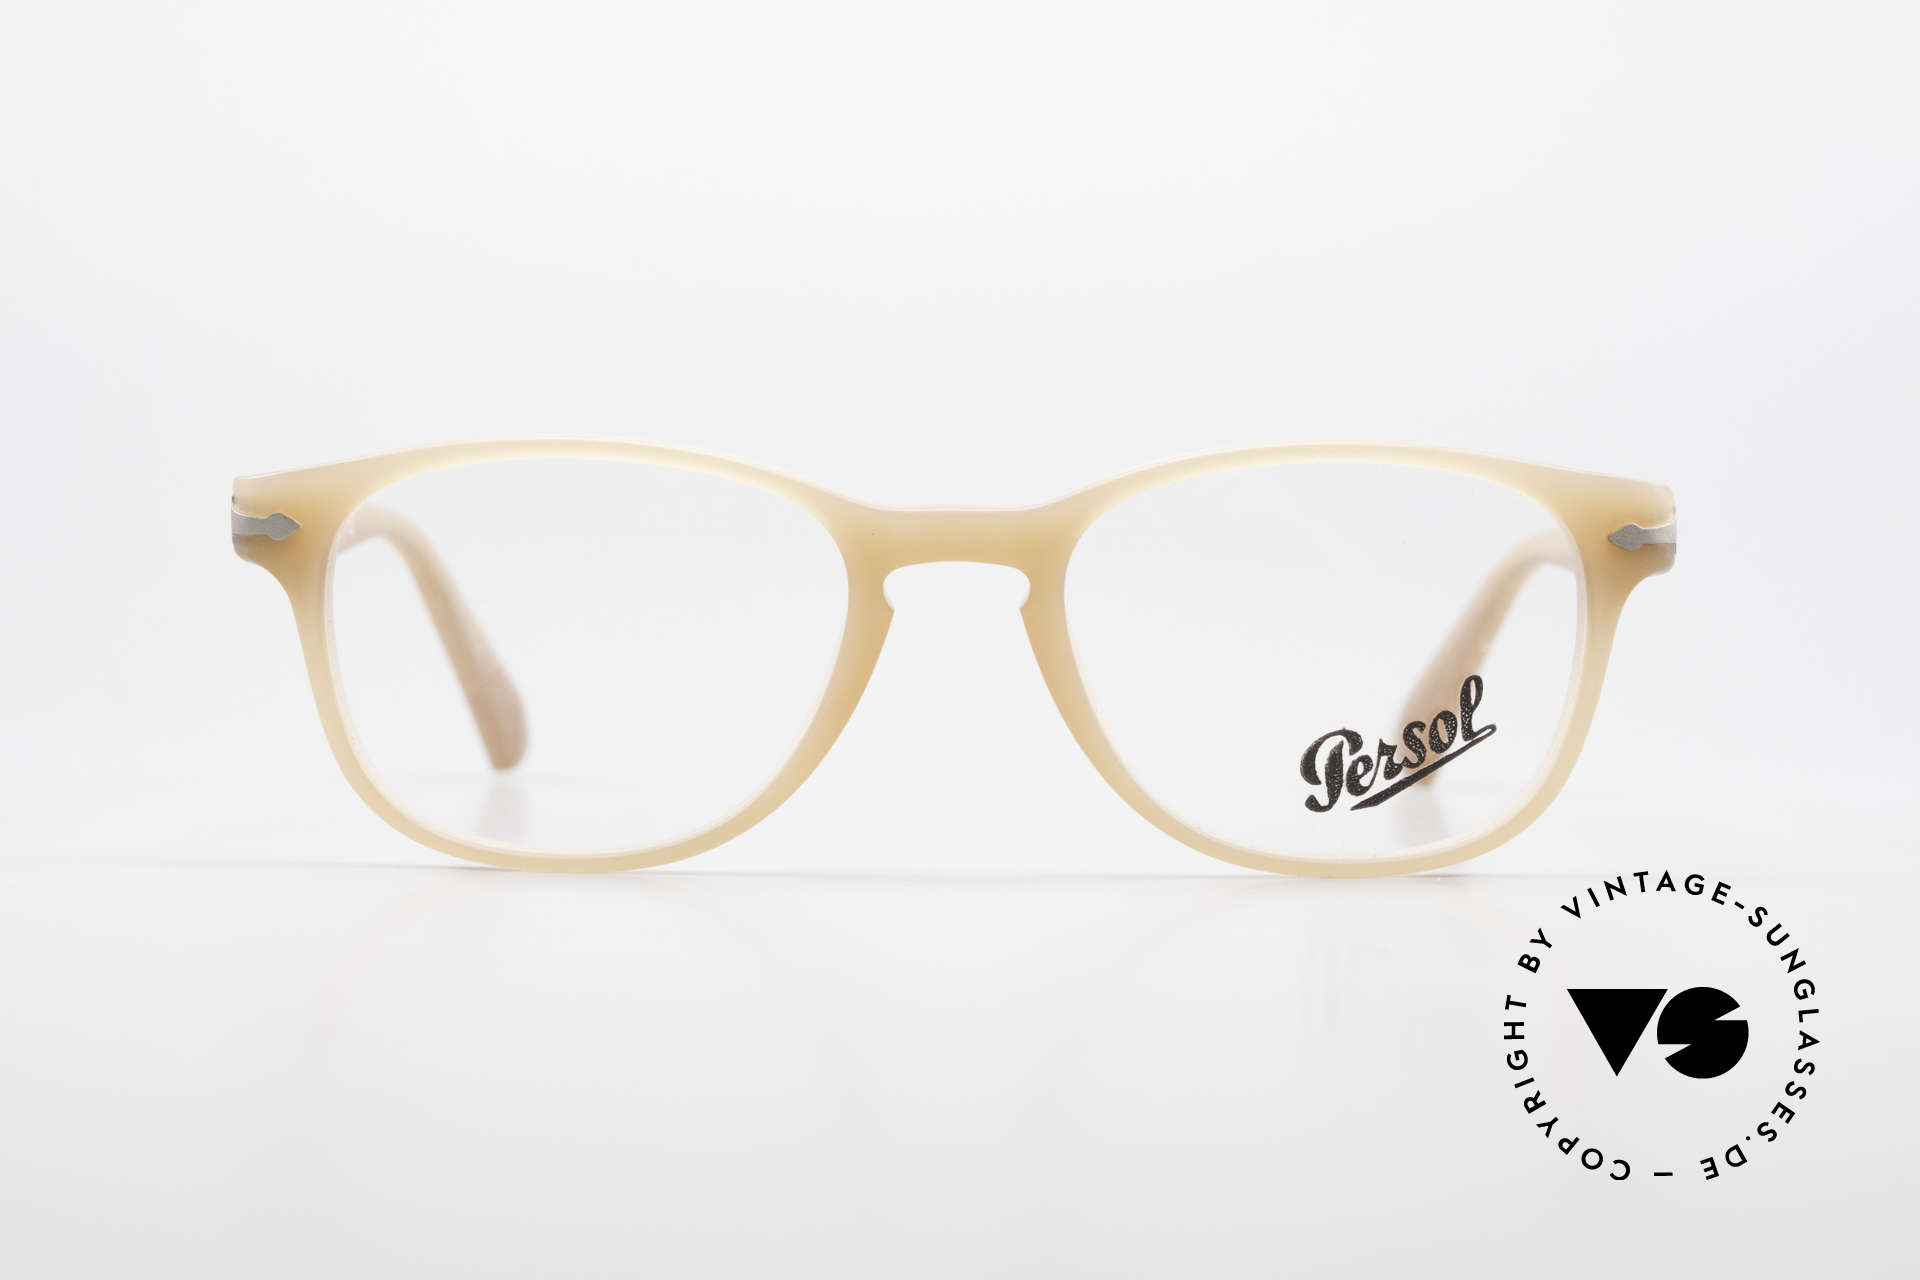 Persol 3085 Ladies Glasses Classic Ambra, classic timeless design & coloring (ambra/sand), Made for Women